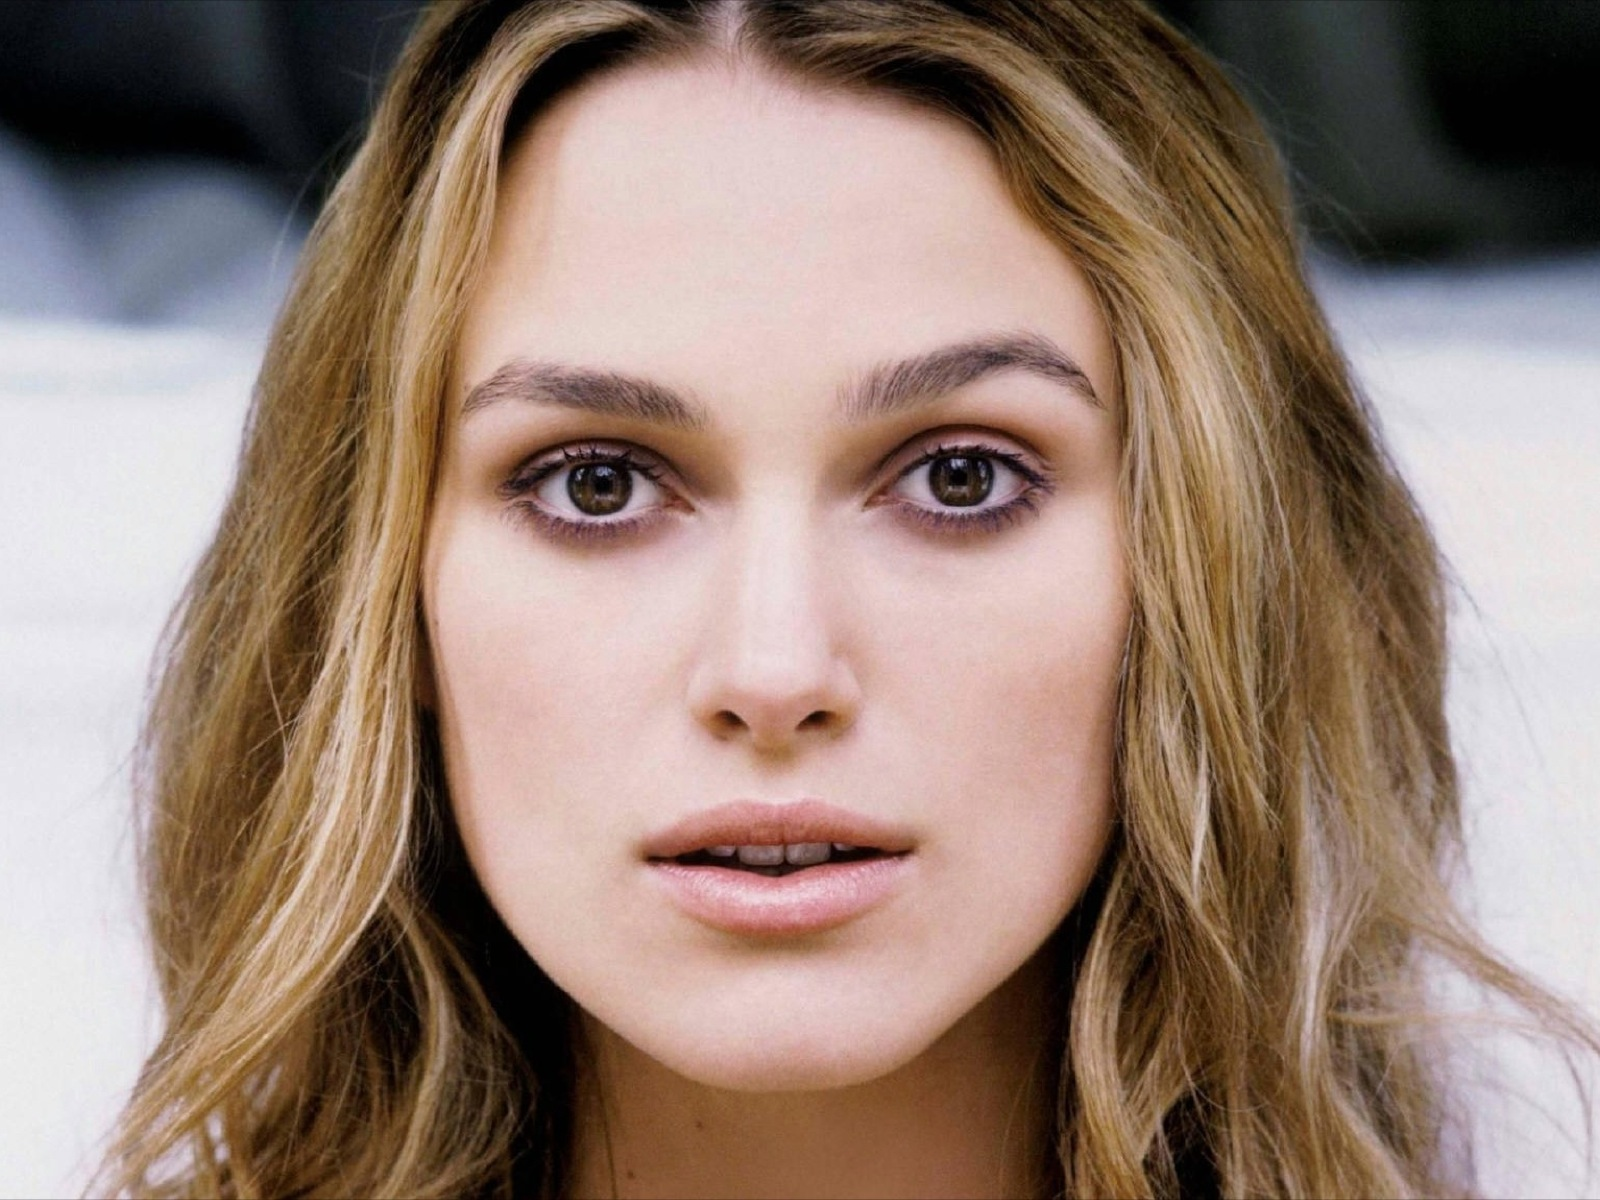 PEOPLE WARNED NOT TO ASK WHERE KEIRA KNIGHTLEY IS